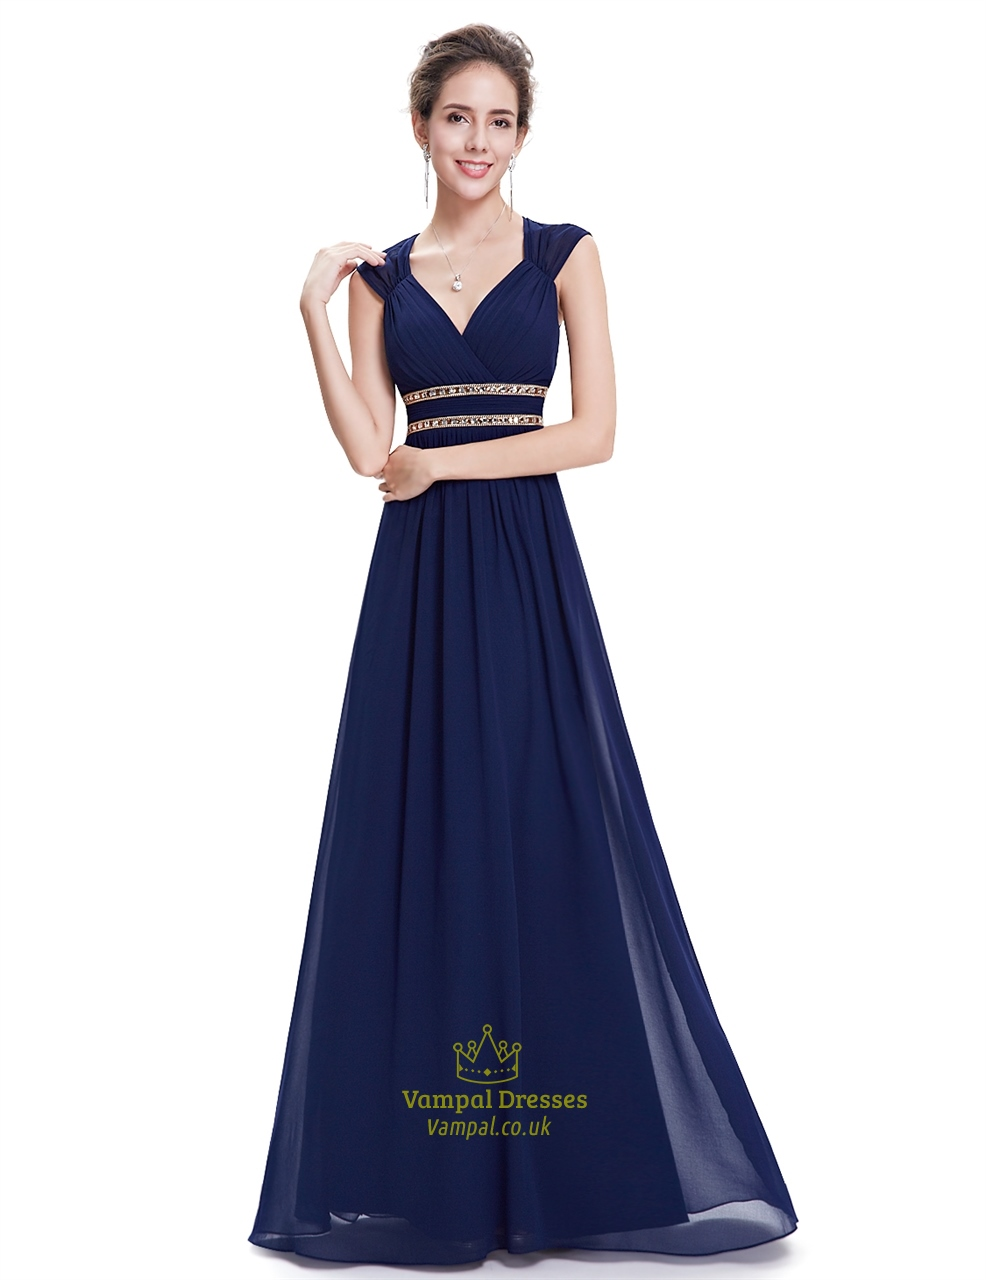 Navy Blue Bridesmaids Dresses With Sleeves : Navy blue chiffon bridesmaid dresses with cap sleeve and open back